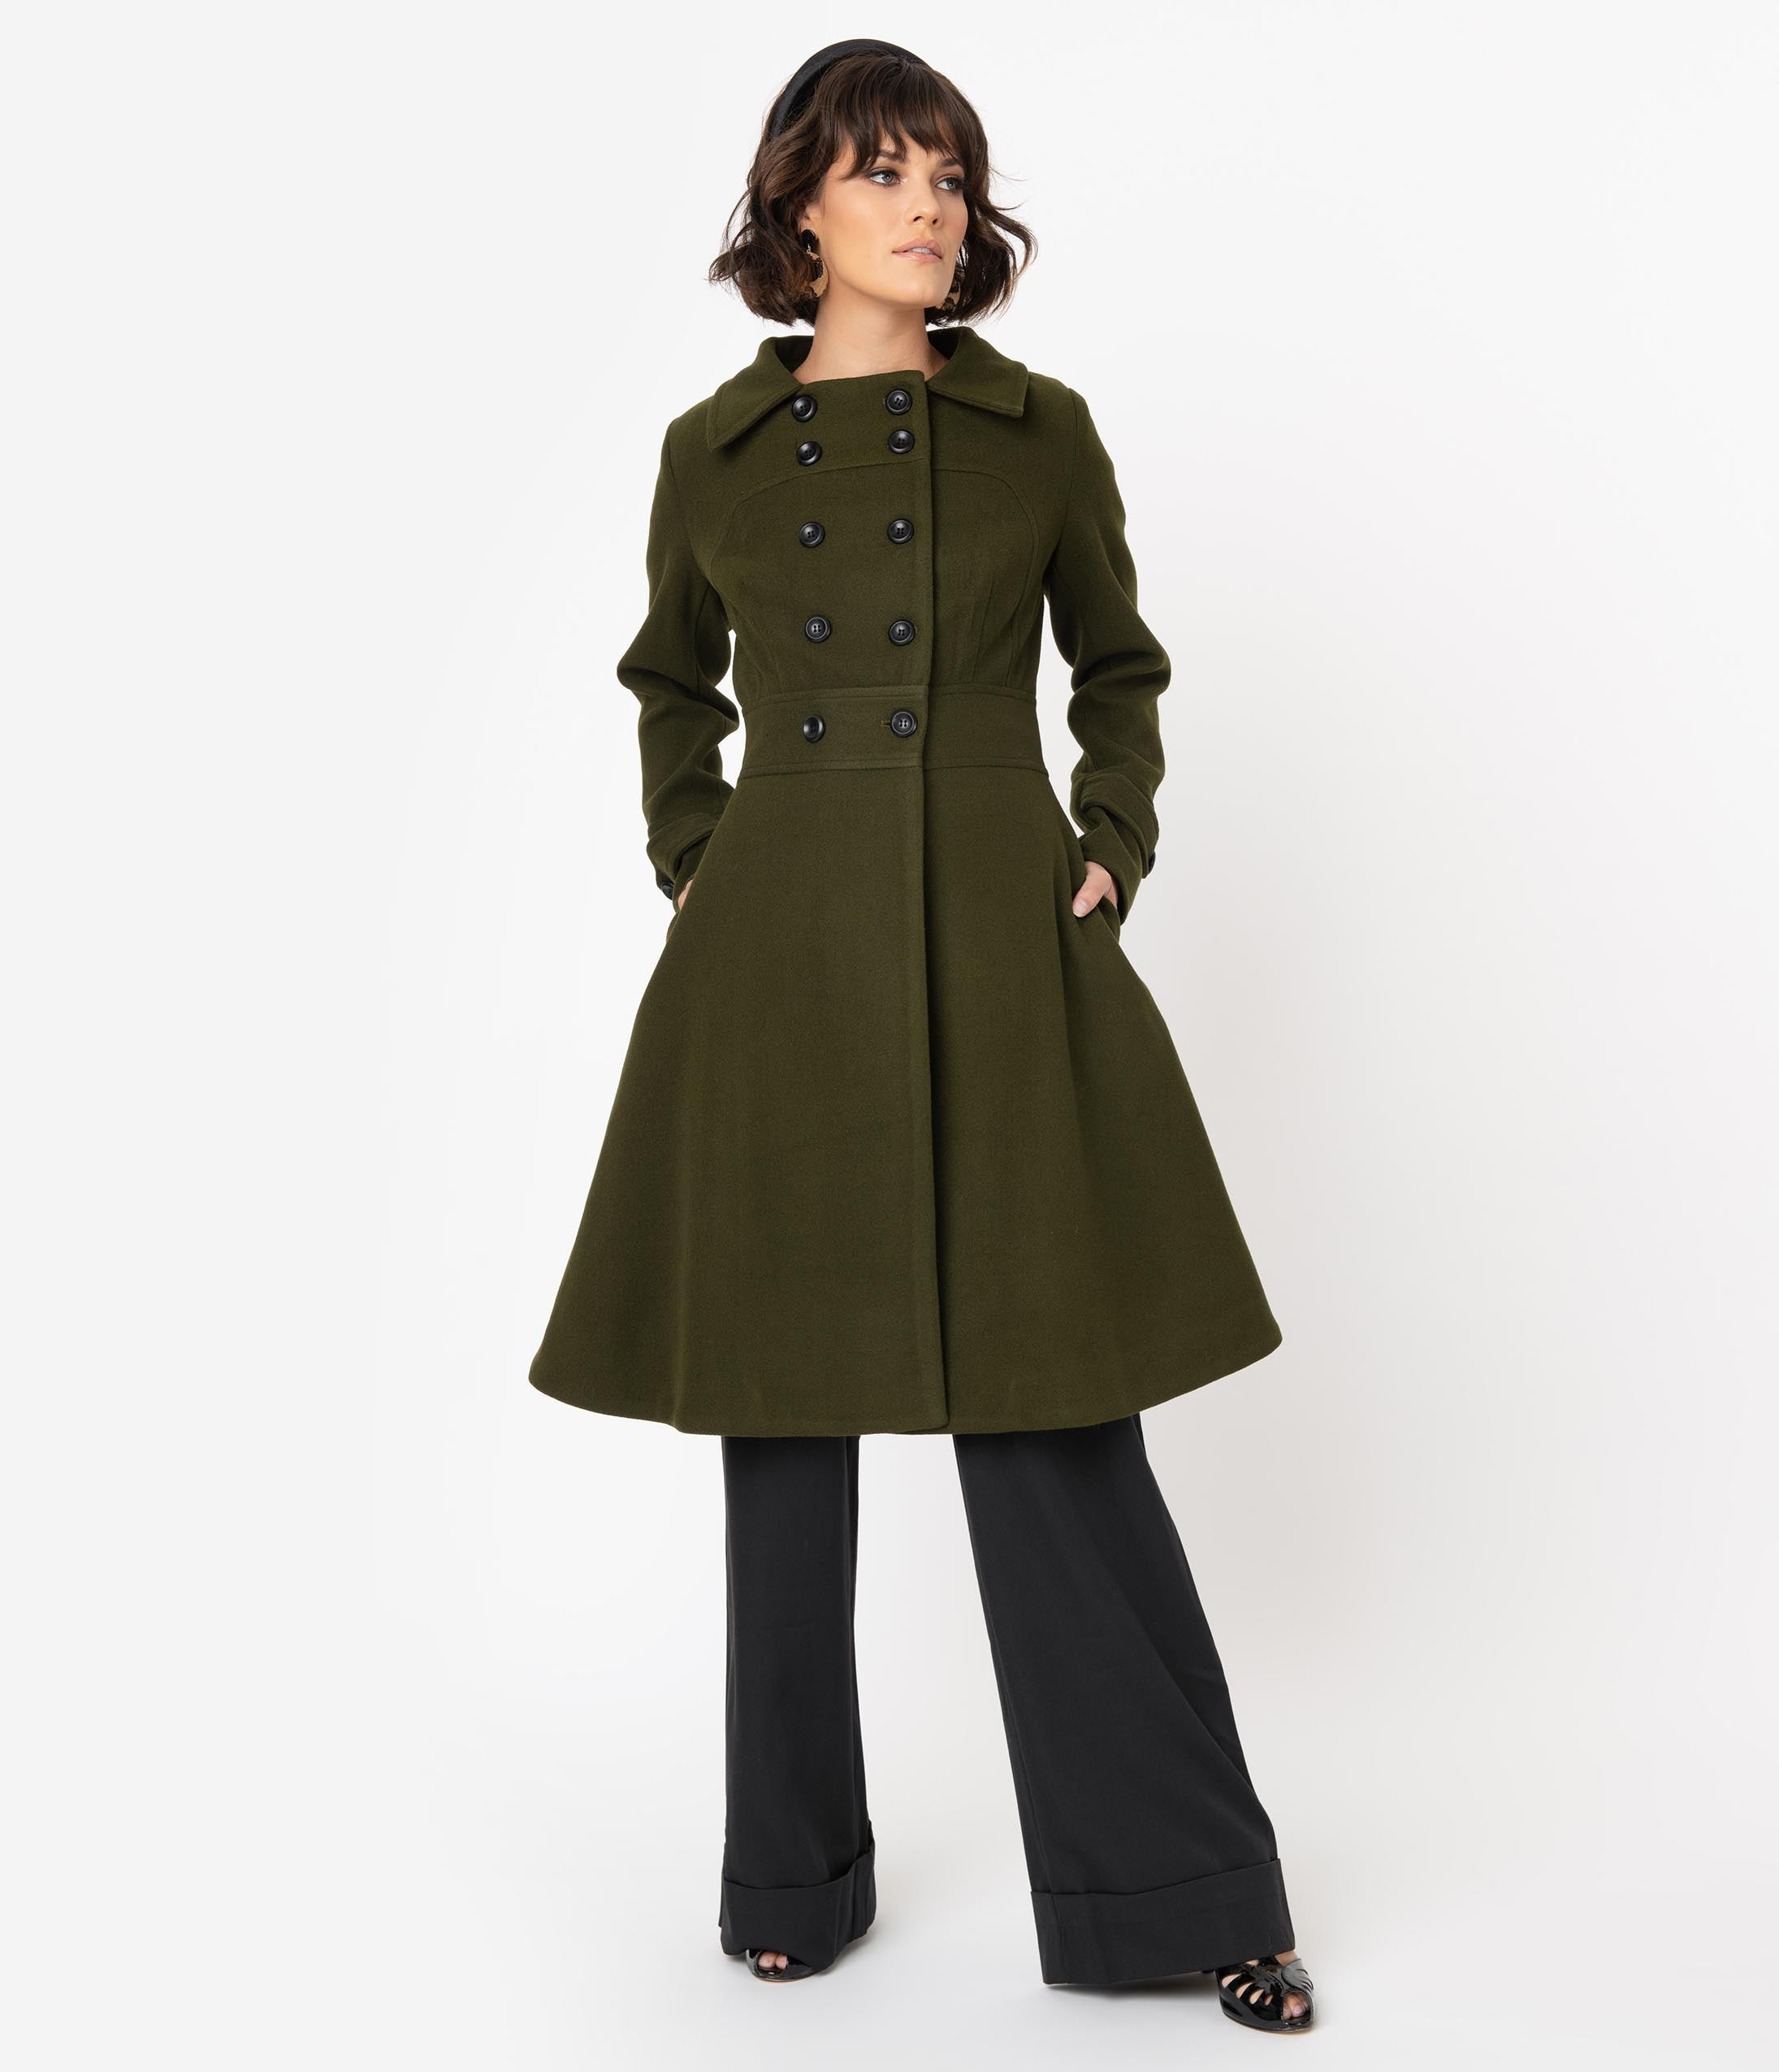 70s Jackets & Hippie Vests, Ponchos Voodoo Vixen Army Green Double Breasted Military Coat $148.00 AT vintagedancer.com